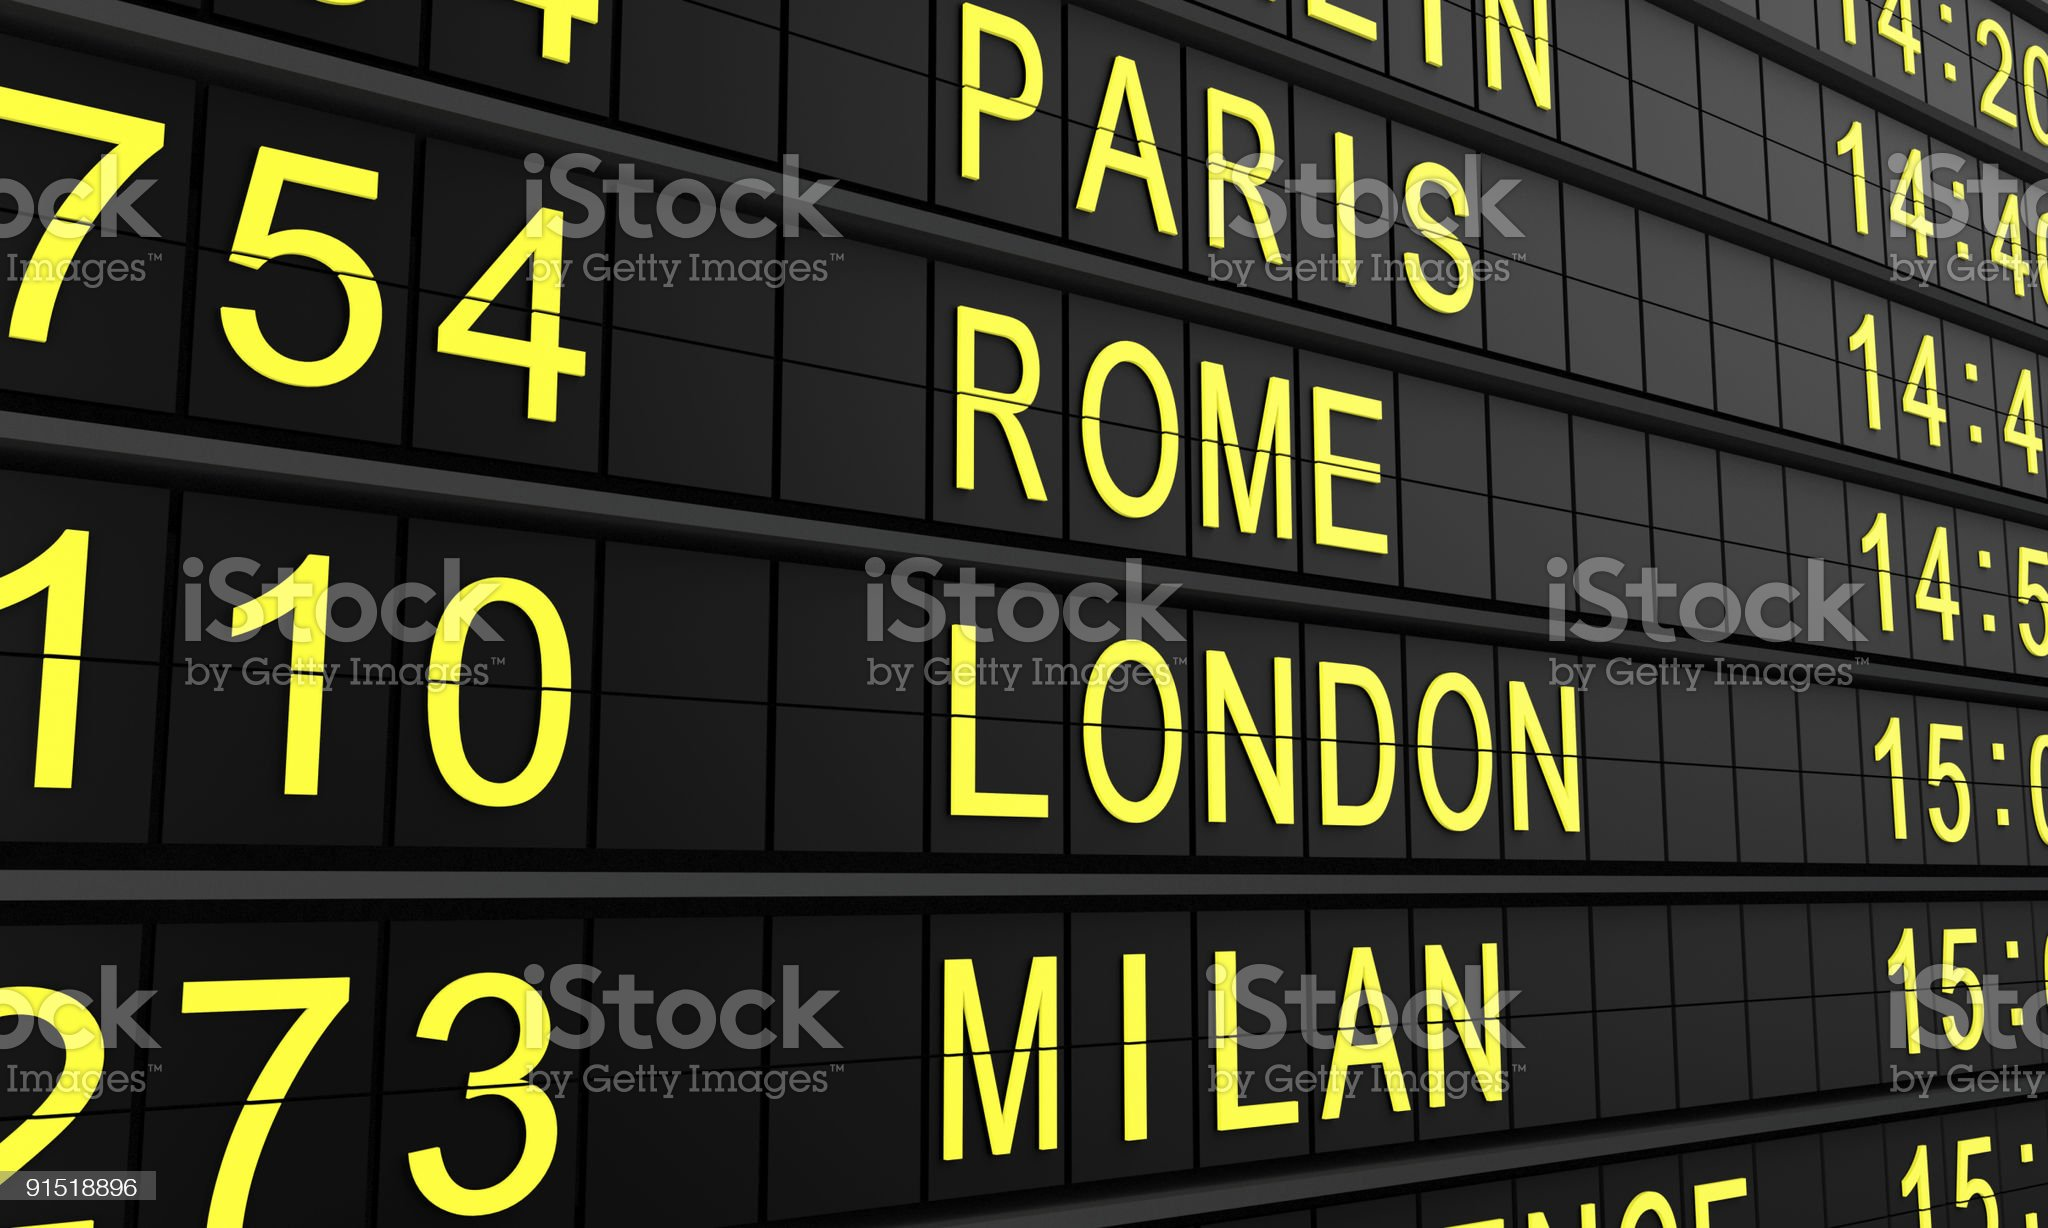 Airport panel royalty-free stock photo